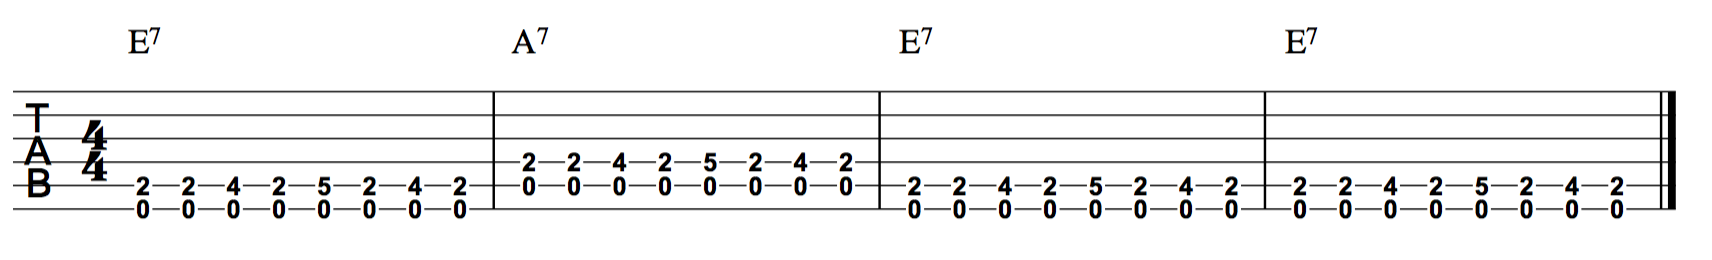 File:E7 A7 E7 E7 blues chord progression guitar.png - Wikimedia Commons